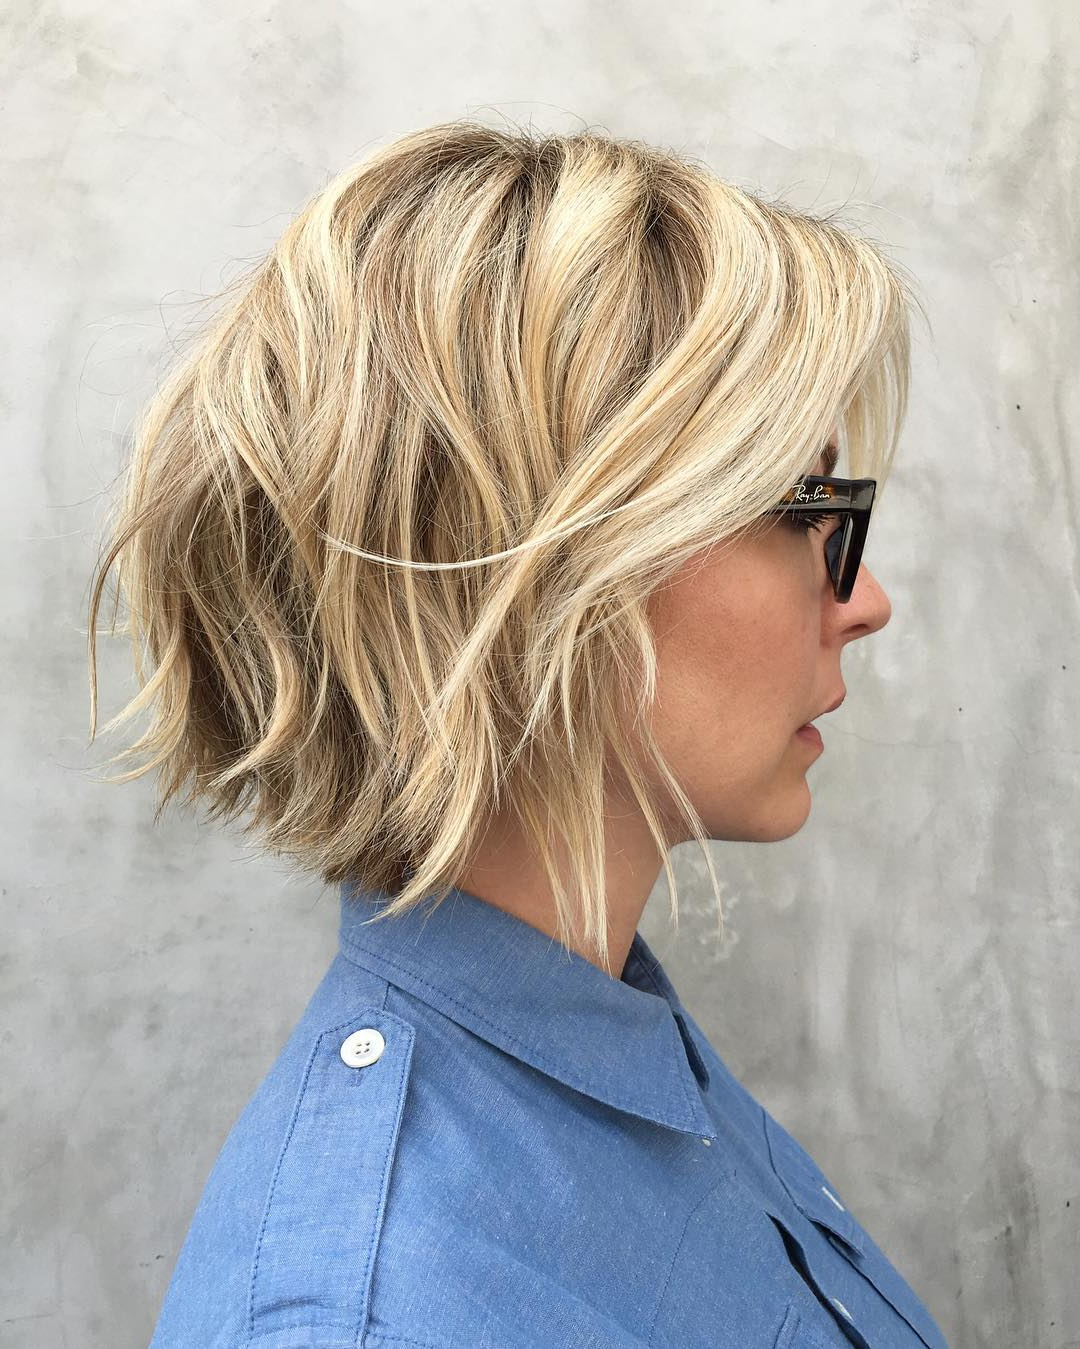 30 Trendiest Shaggy Bob Haircuts Of The Season Inside Trendy Shaggy Bob Hairstyles With Curtain Bangs (View 13 of 20)